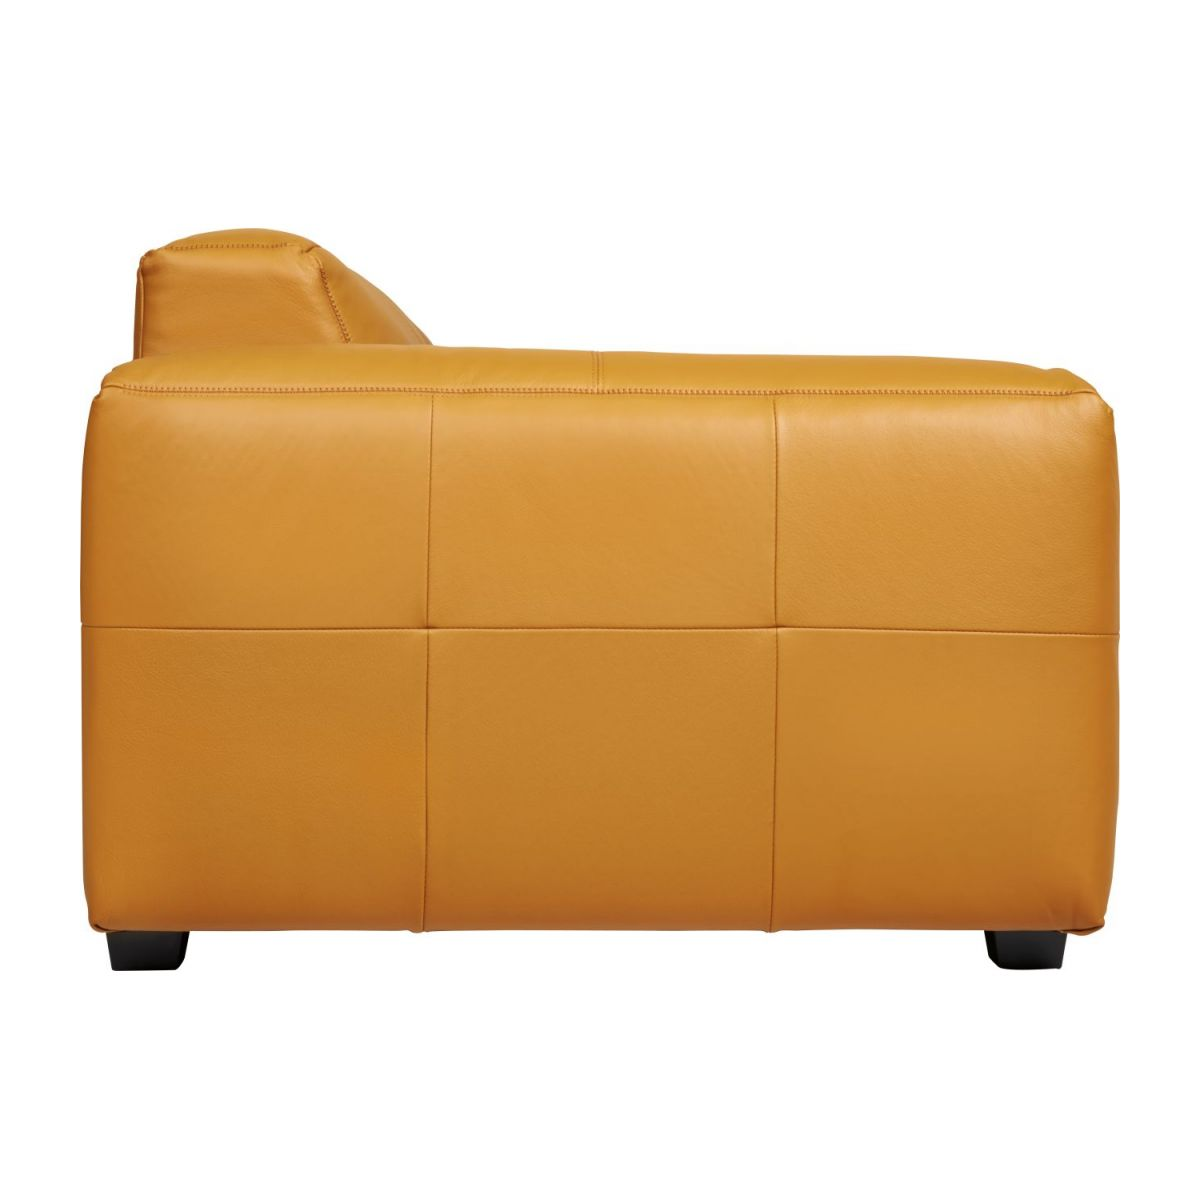 2 seater sofa in Savoy semi-aniline leather, cognac n°6